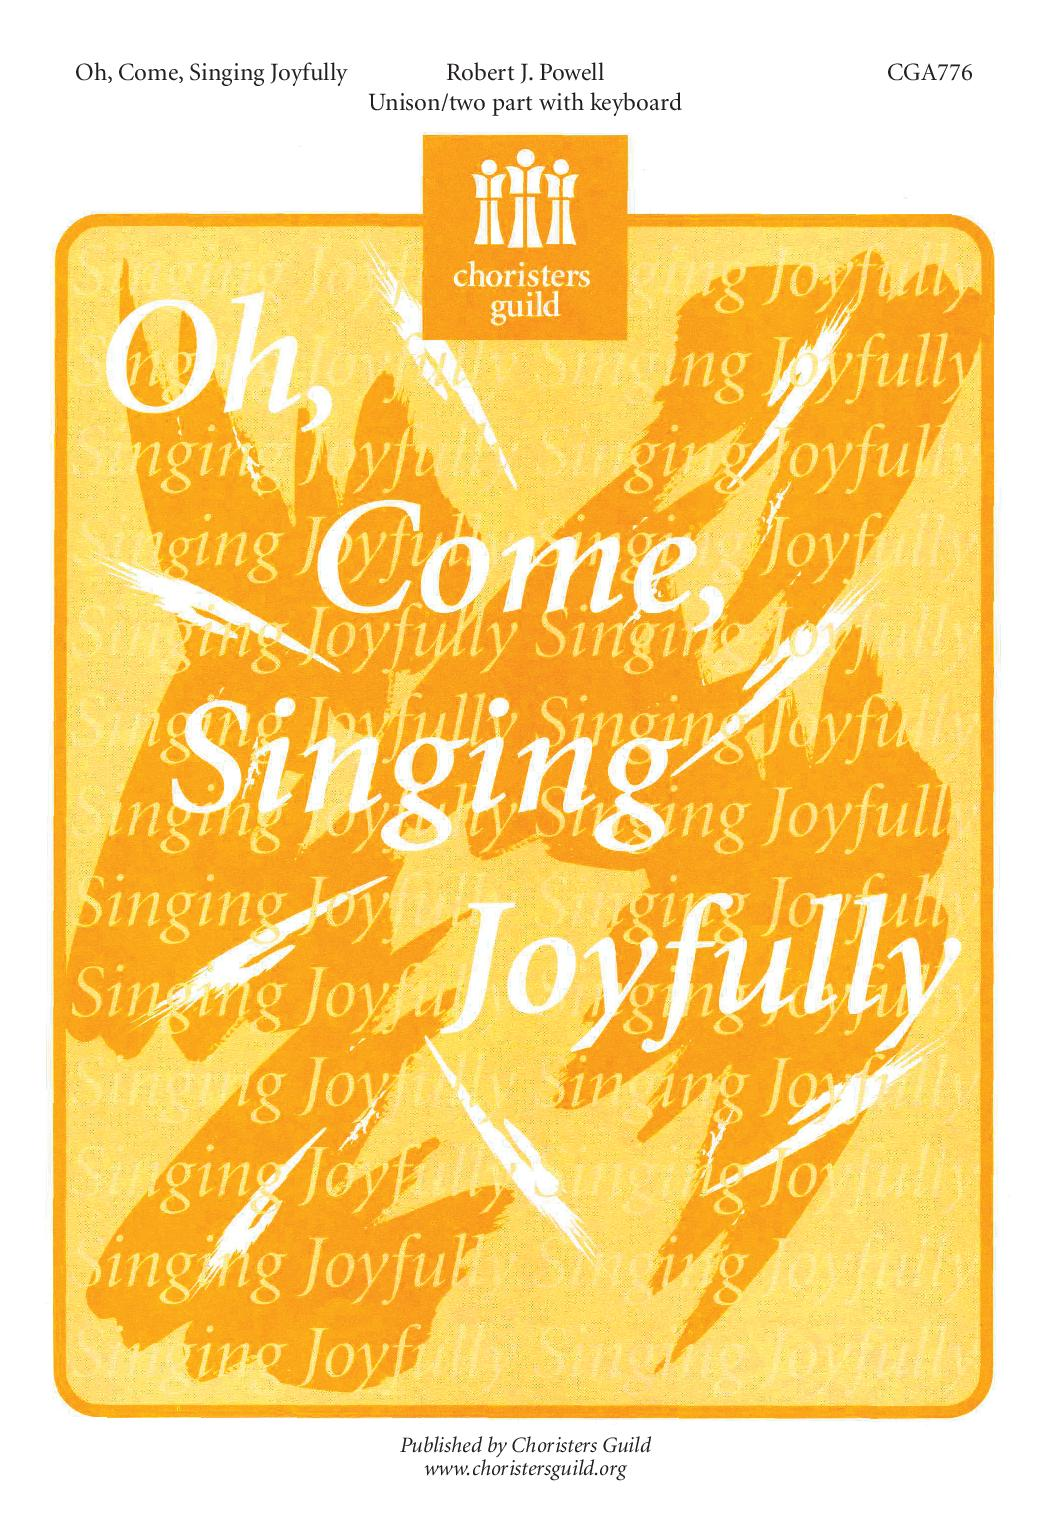 INACTIVE - Oh, Come, Singing Joyfully